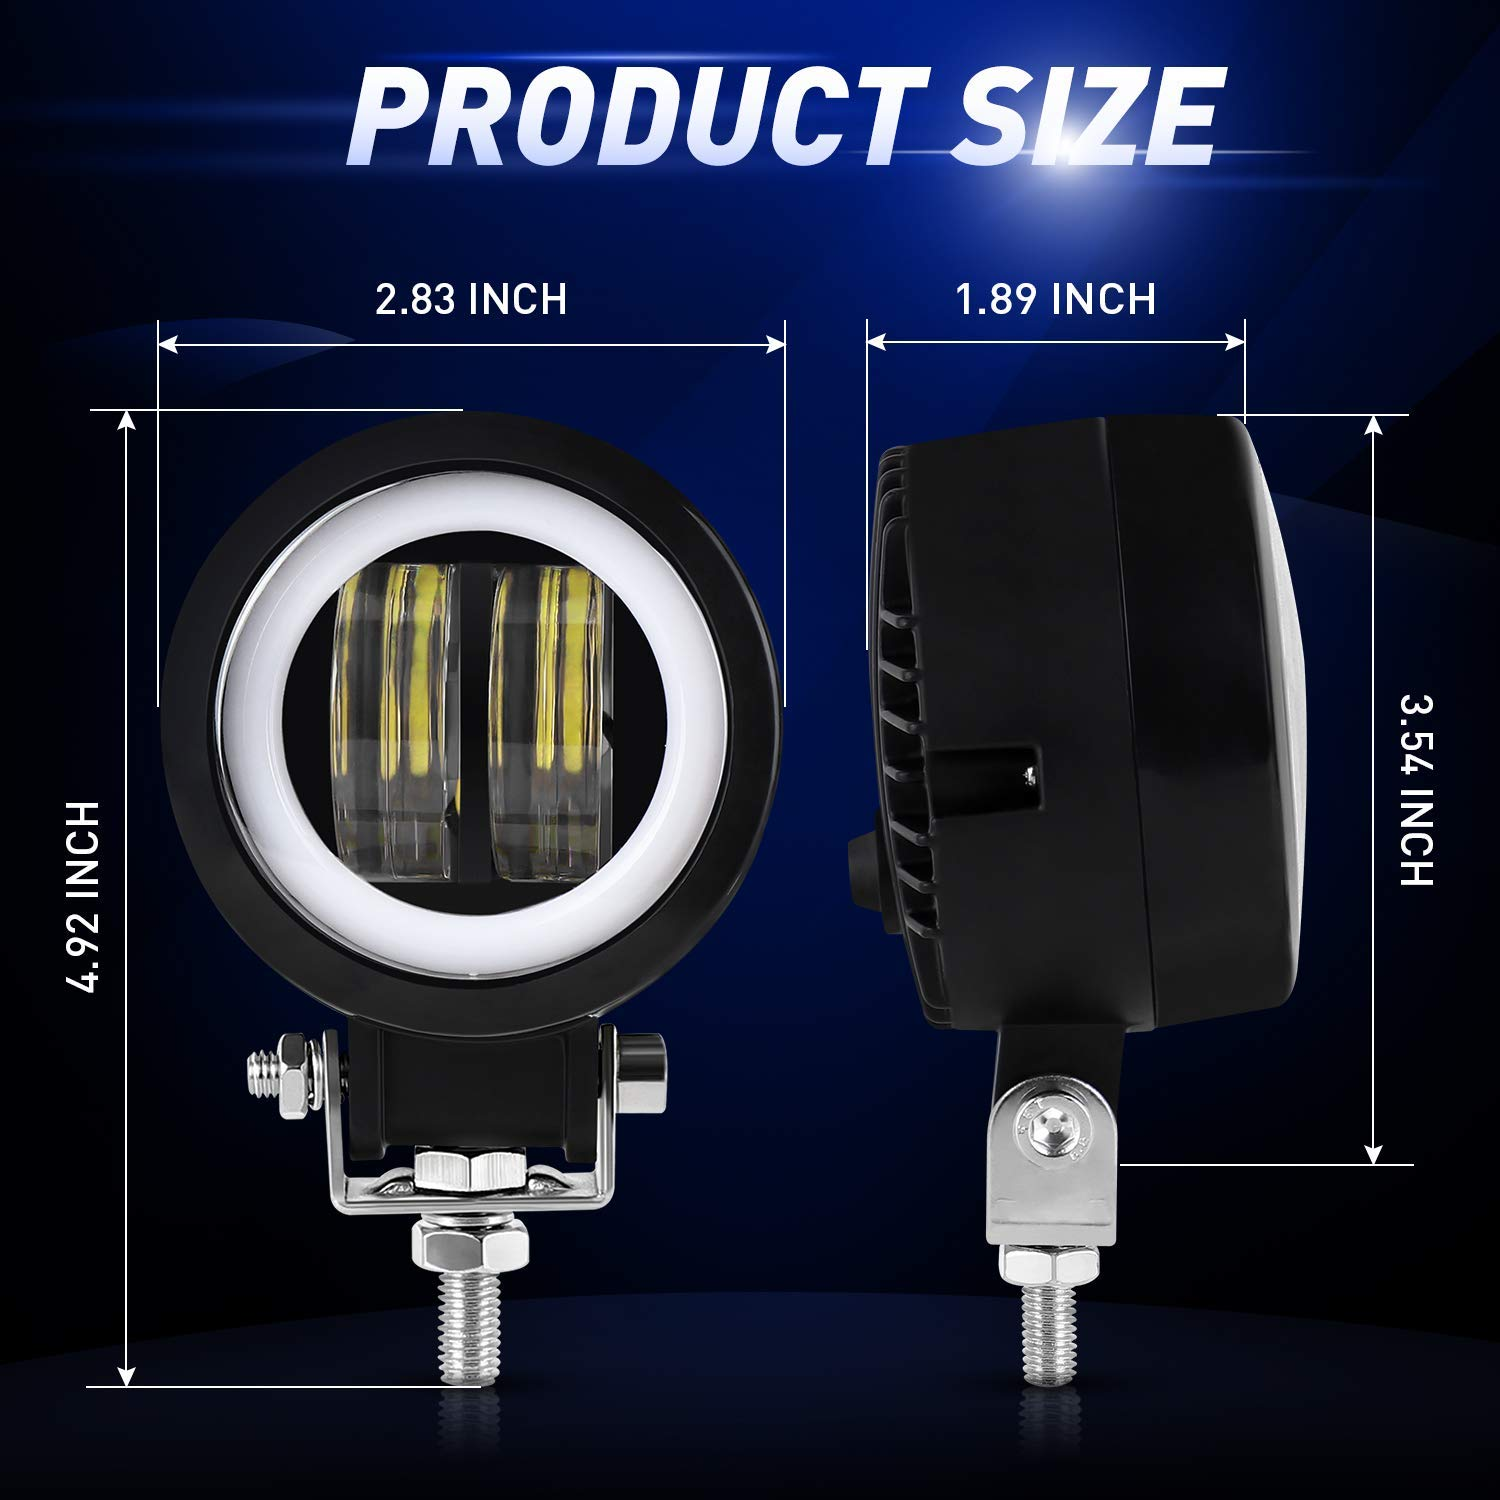 3 Inch 40w Round IP68 Waterproof Motorcycle Led Fog Light Kit with DRL for Motorbike Auxiliary Turn Signal